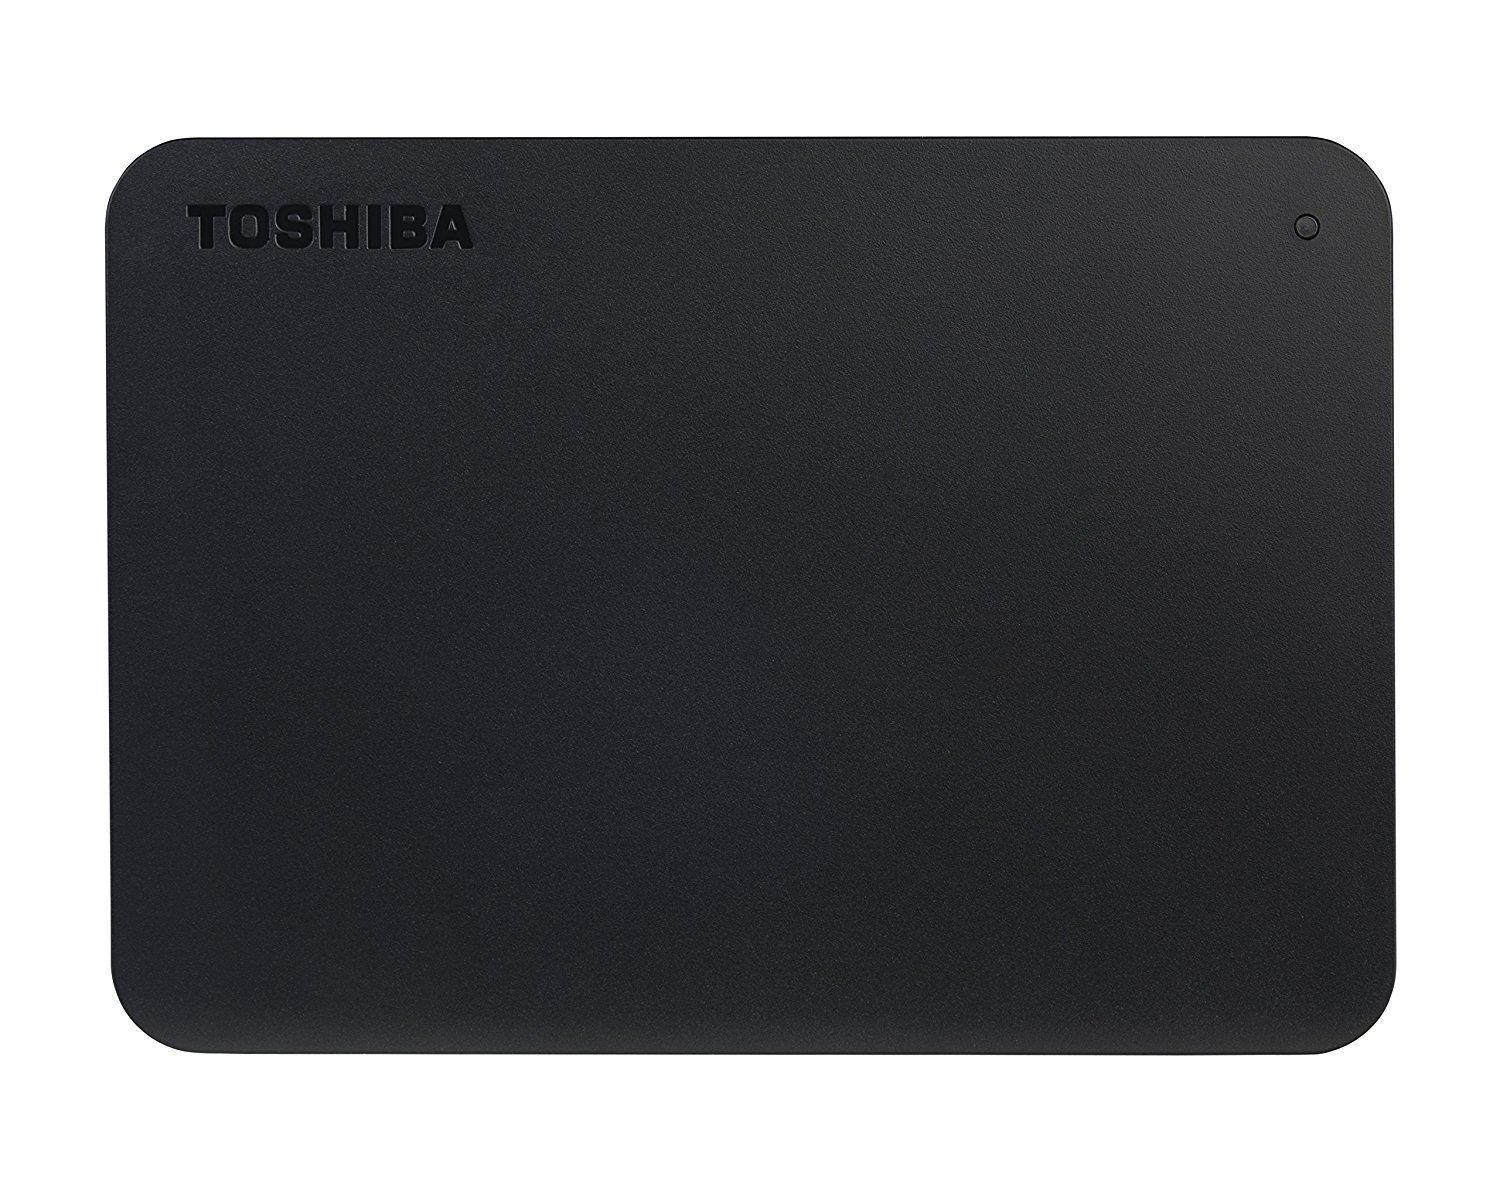 Toshiba · Canvio Basics · 500GB